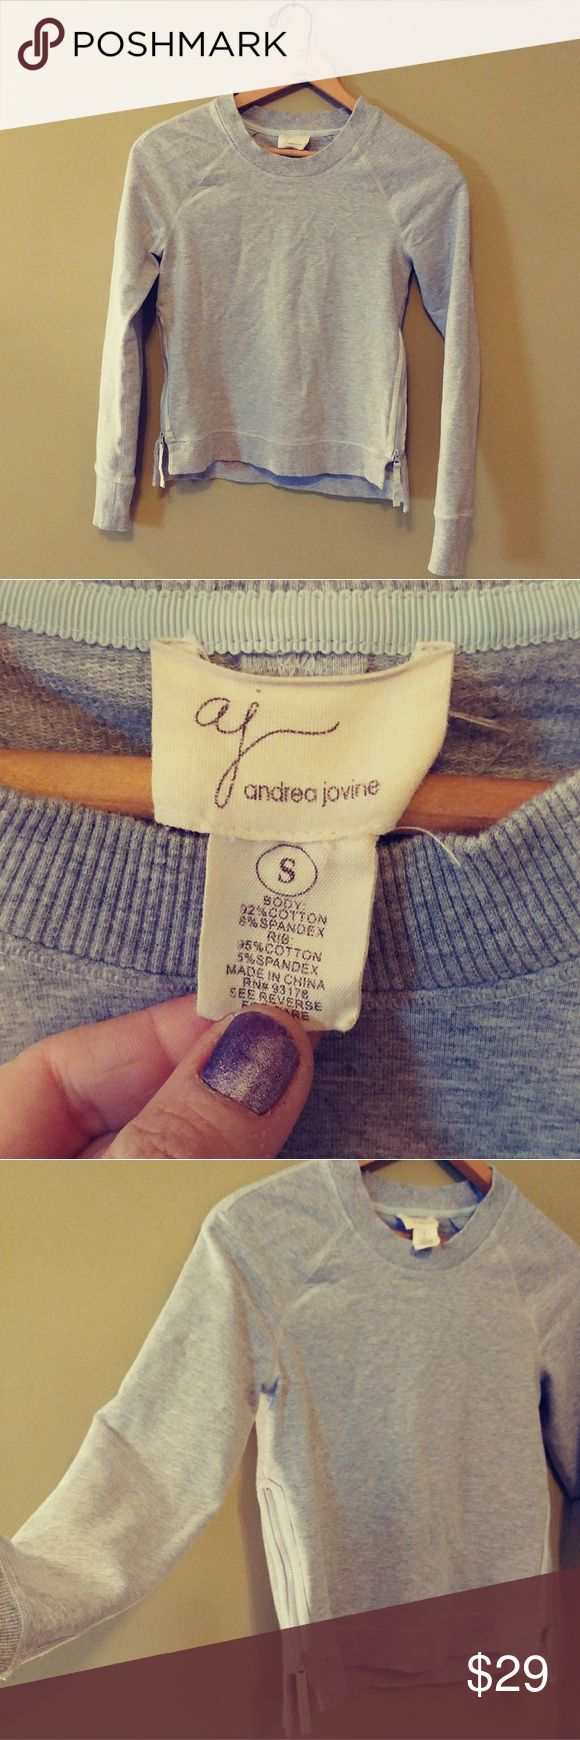 ANDREA JOVINE SWEATSHIRT WITH SIDE ZIPPERS Preloved, good condition, super soft, cute and stretchy. Reference I'm 5'6 135 lbs. Feel free to ask any questions BUNDLE FOR BETTER DISCOUNT Andrea Jovine Tops Sweatshirts & Hoodies